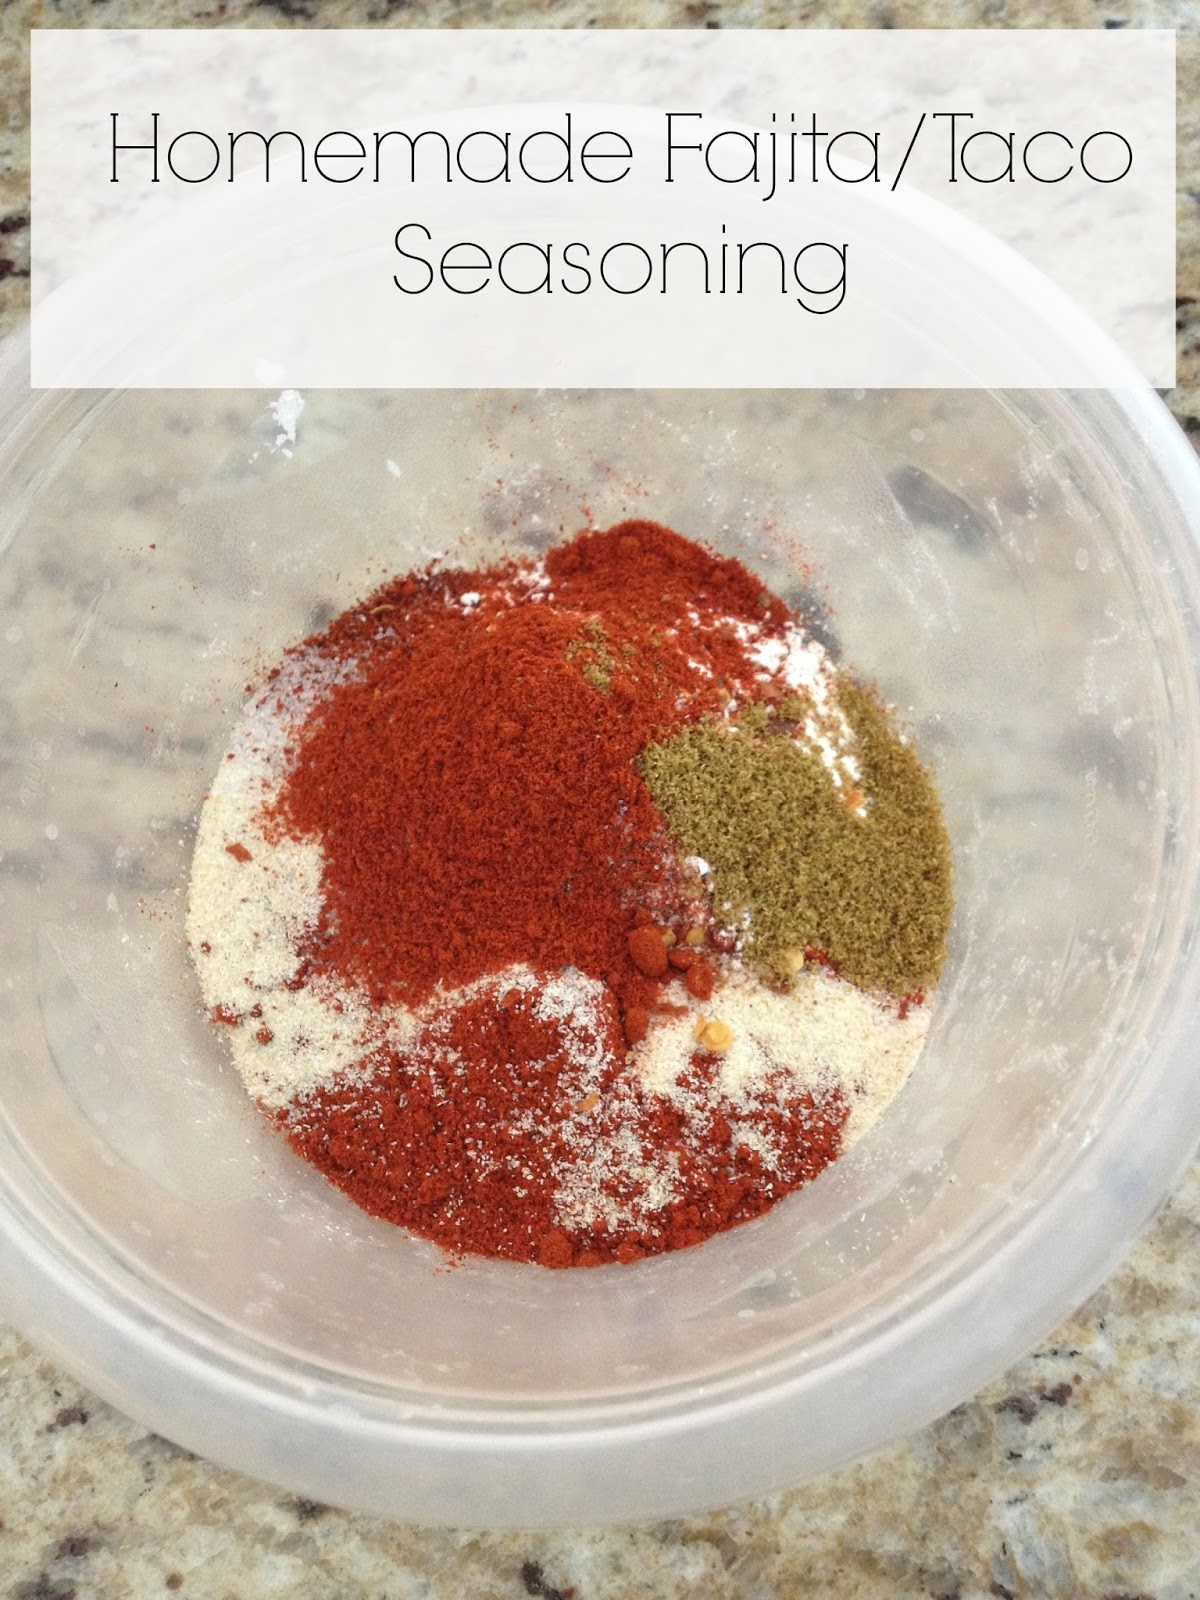 Life Love Larson: Homemade Fajita/Taco Seasoning